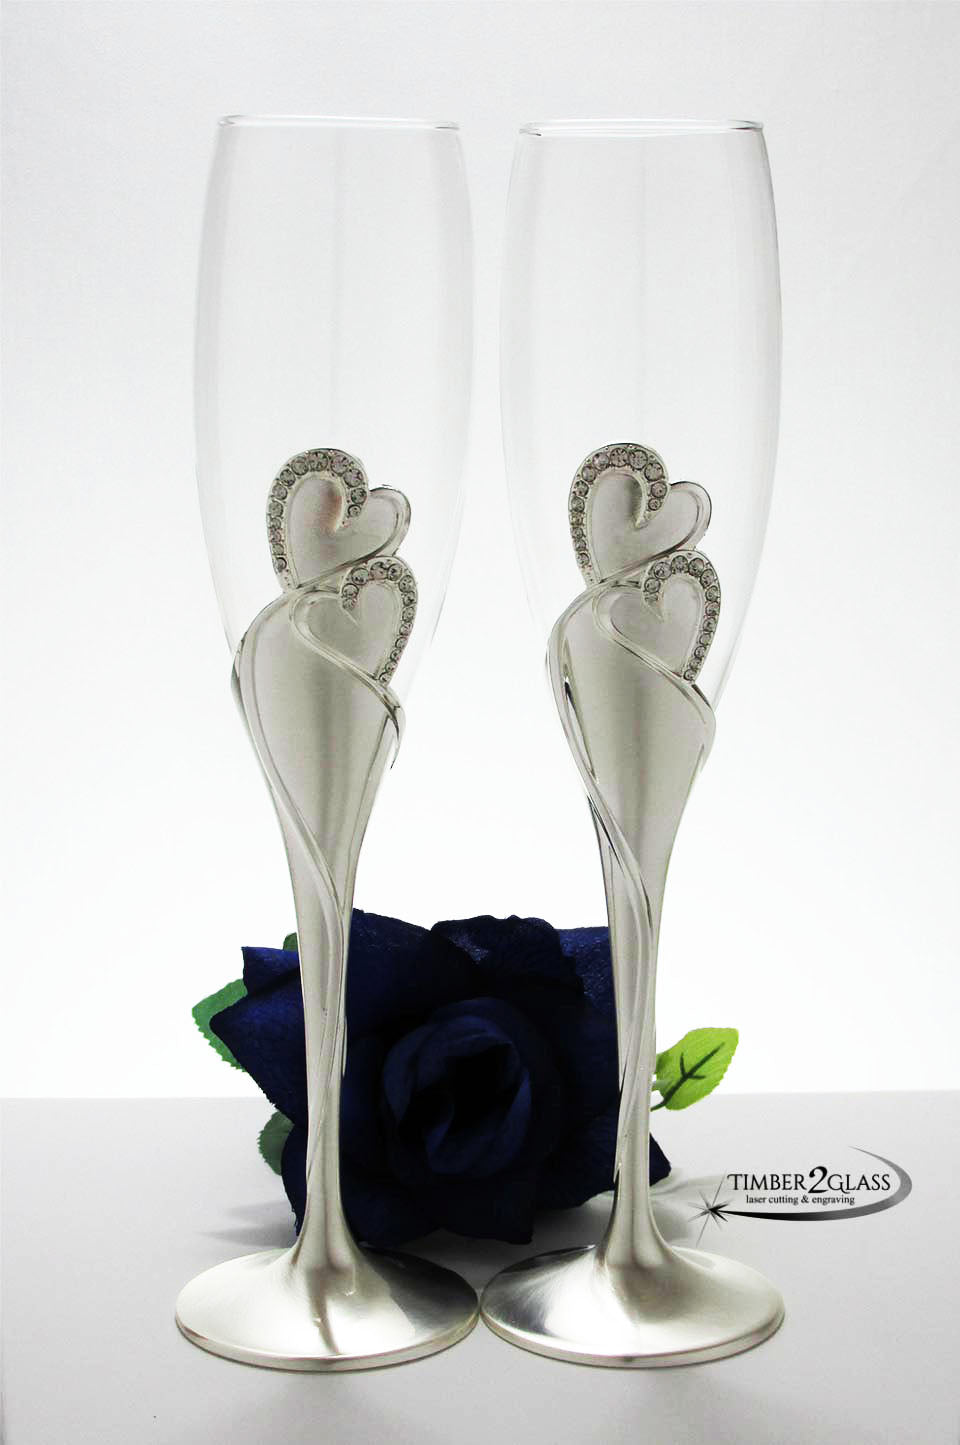 hearts wedding flutes, personalized heart champagne glasses, engrave heart glasses with Timber 2 Glass